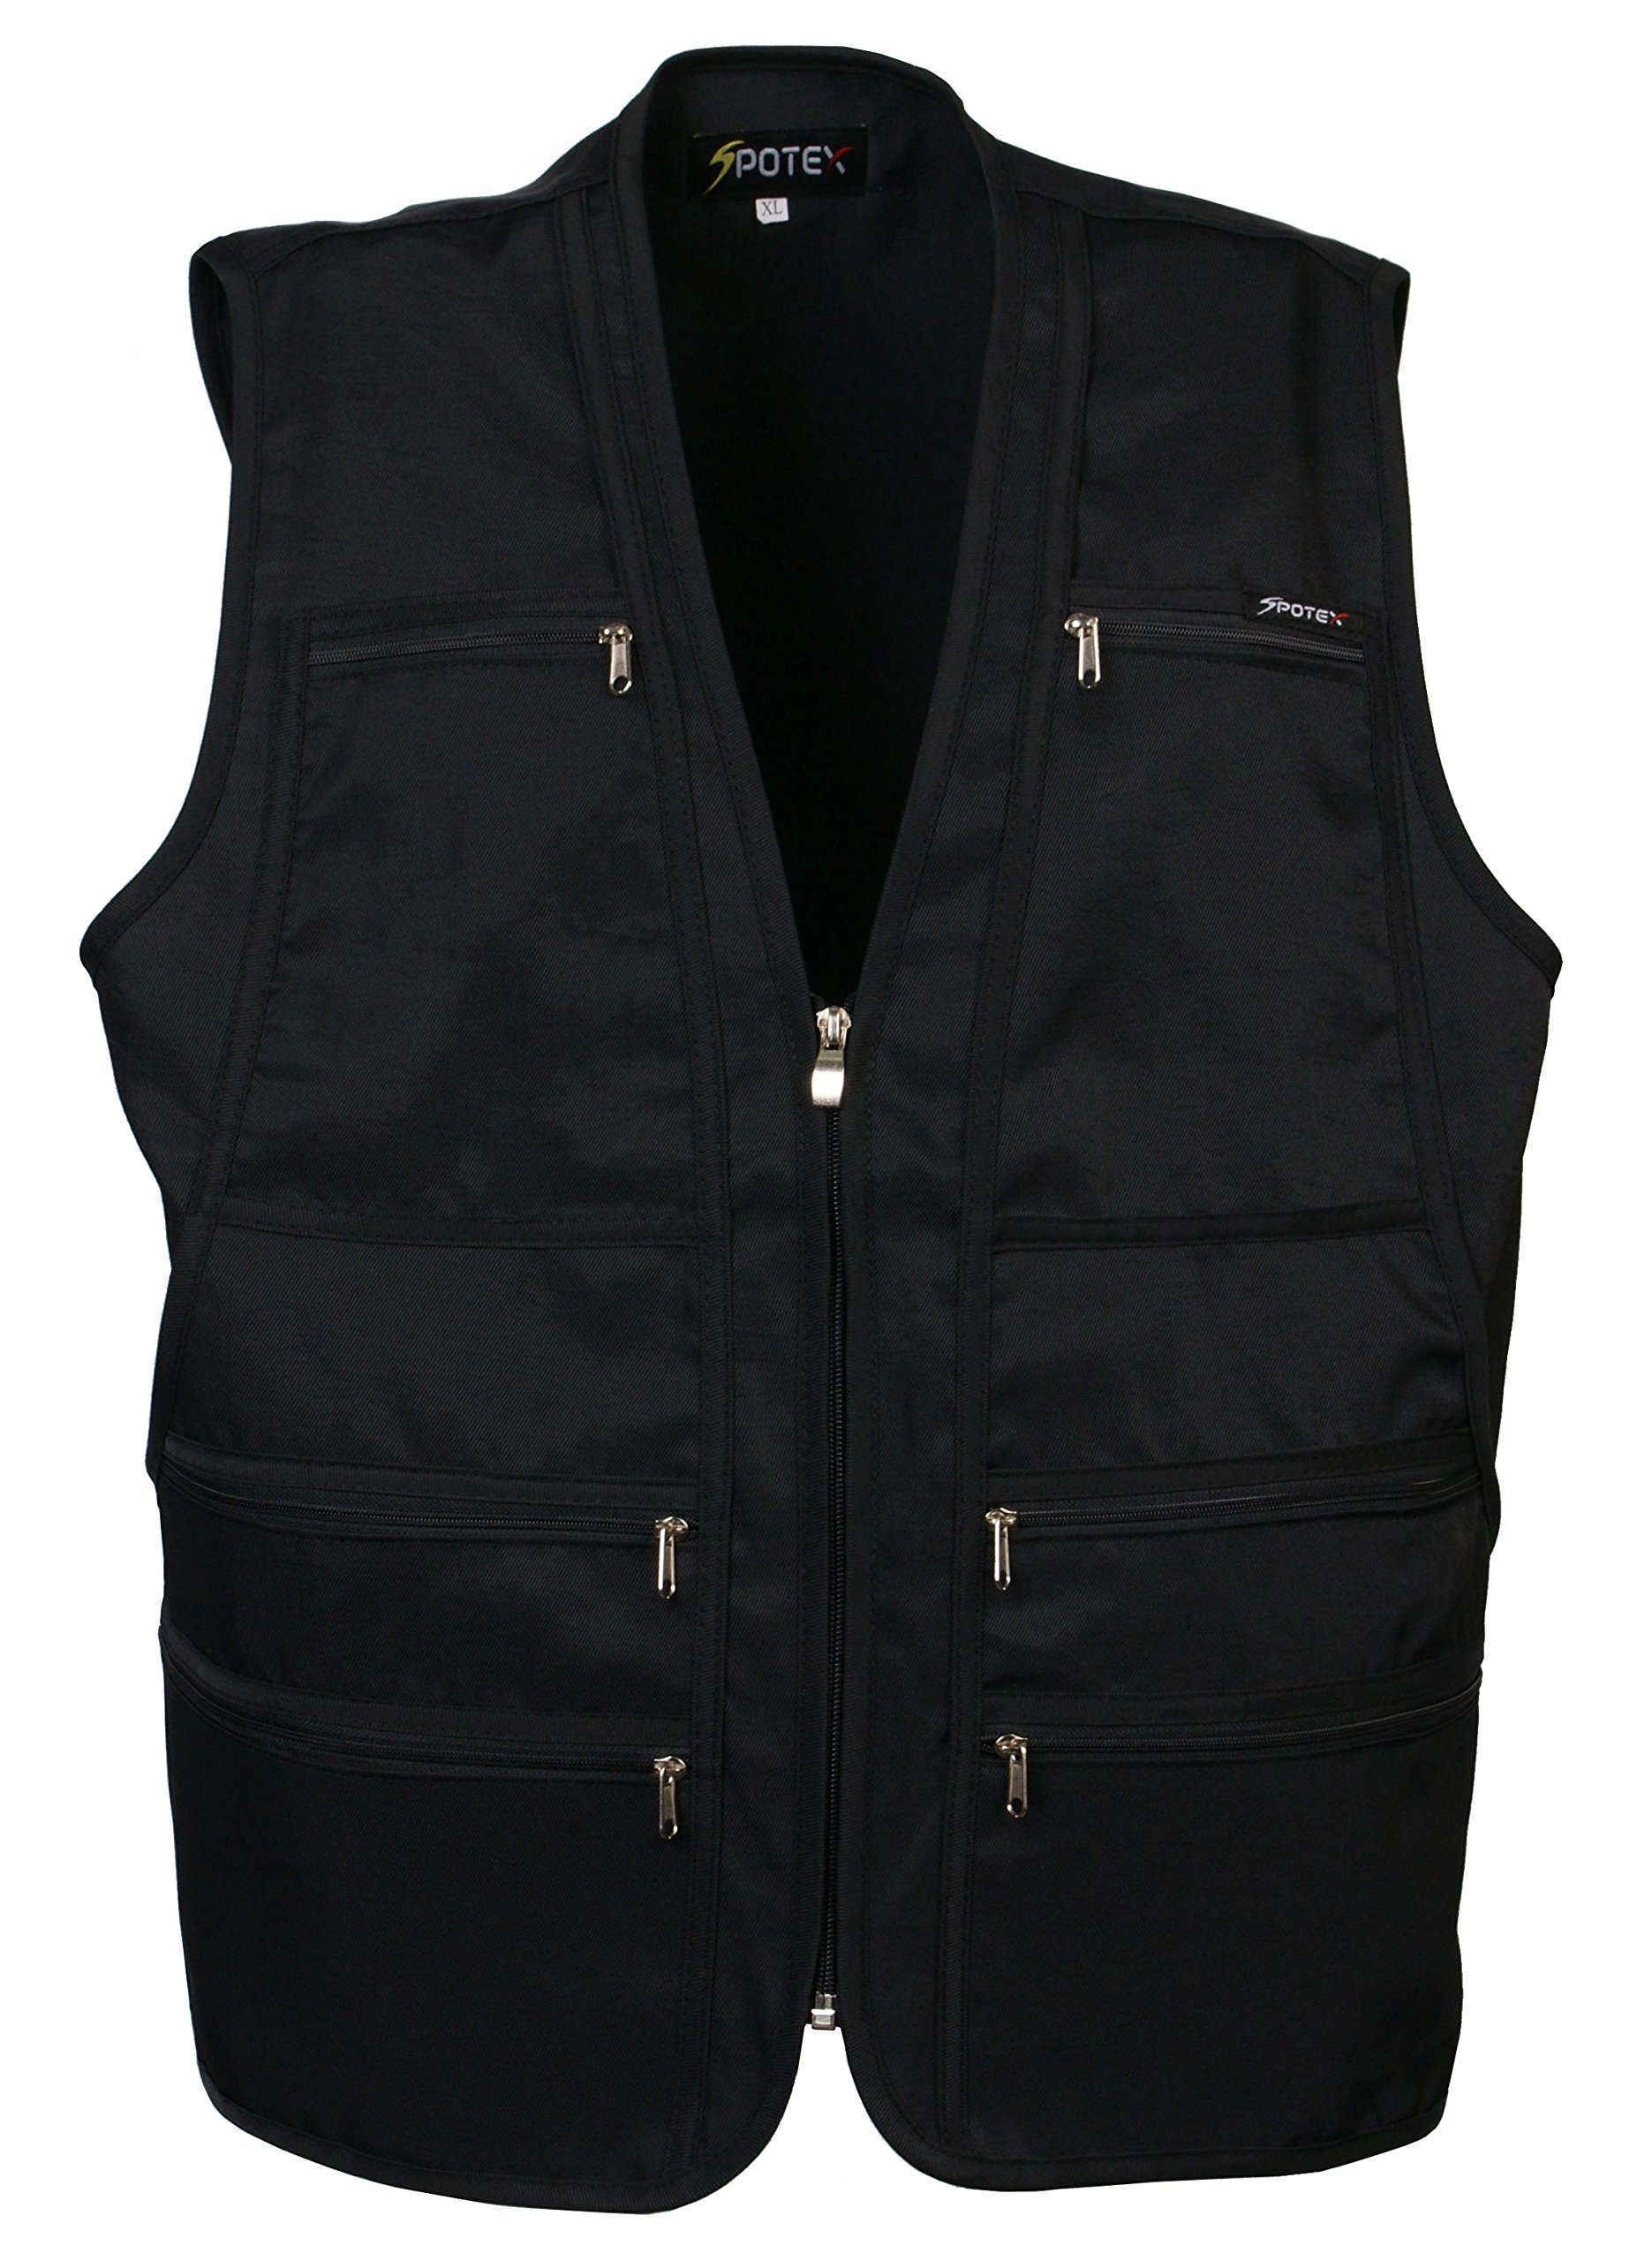 Men's 9 Pockets Work Utility Vest Military Photo Safari Travel Vest (2XL, Black)